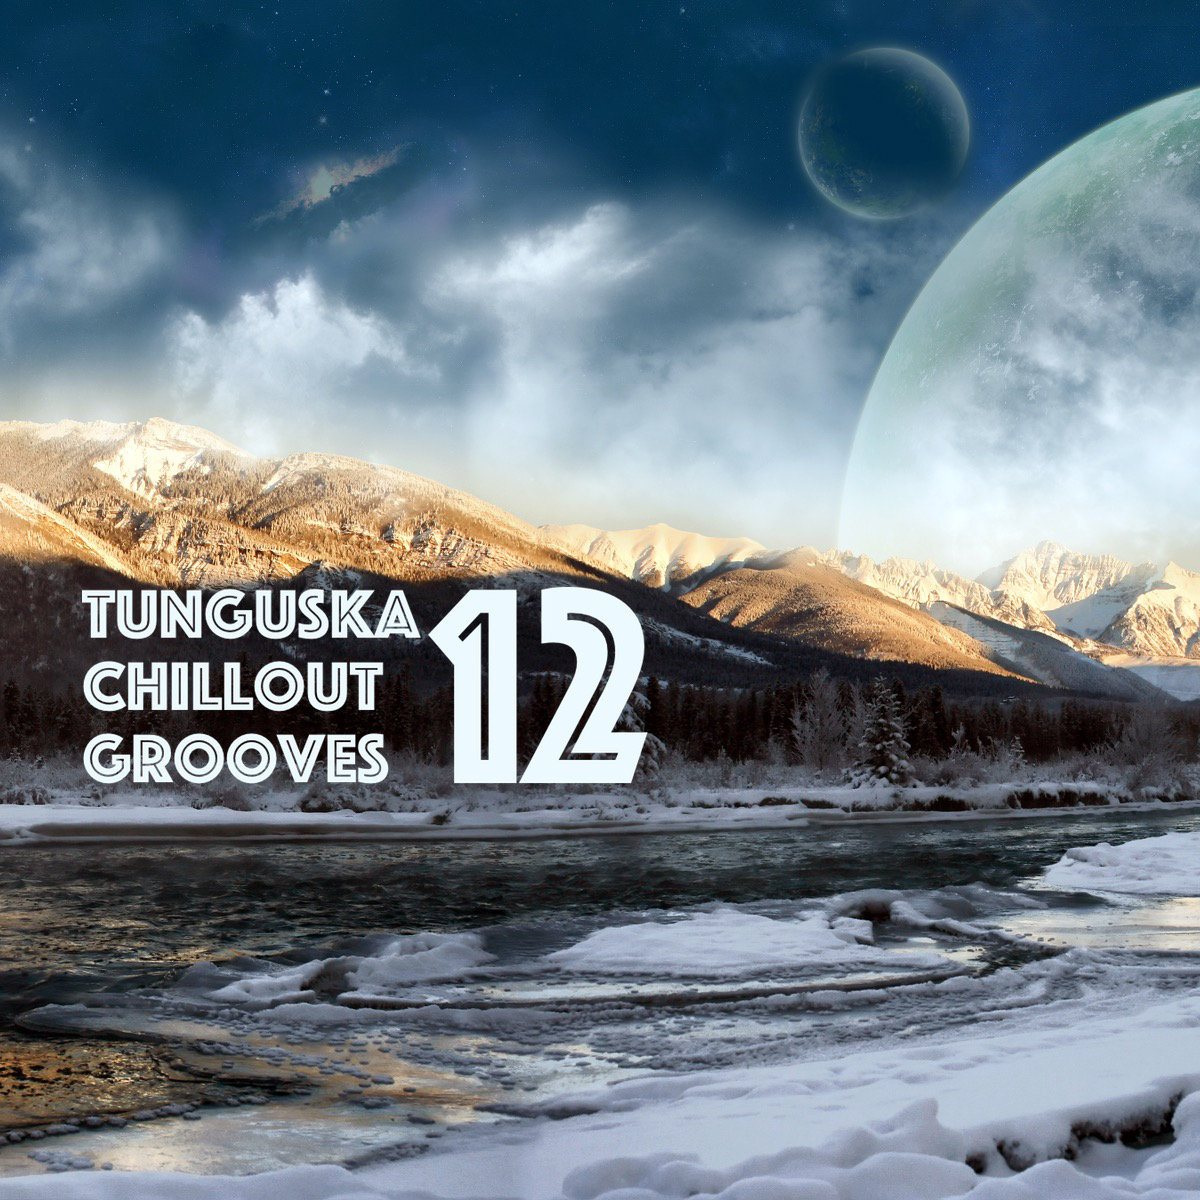 Andy Lime - Desire (Original Mix) @ 'Tunguska Chillout Grooves vol.12' album (electronic, ambient)